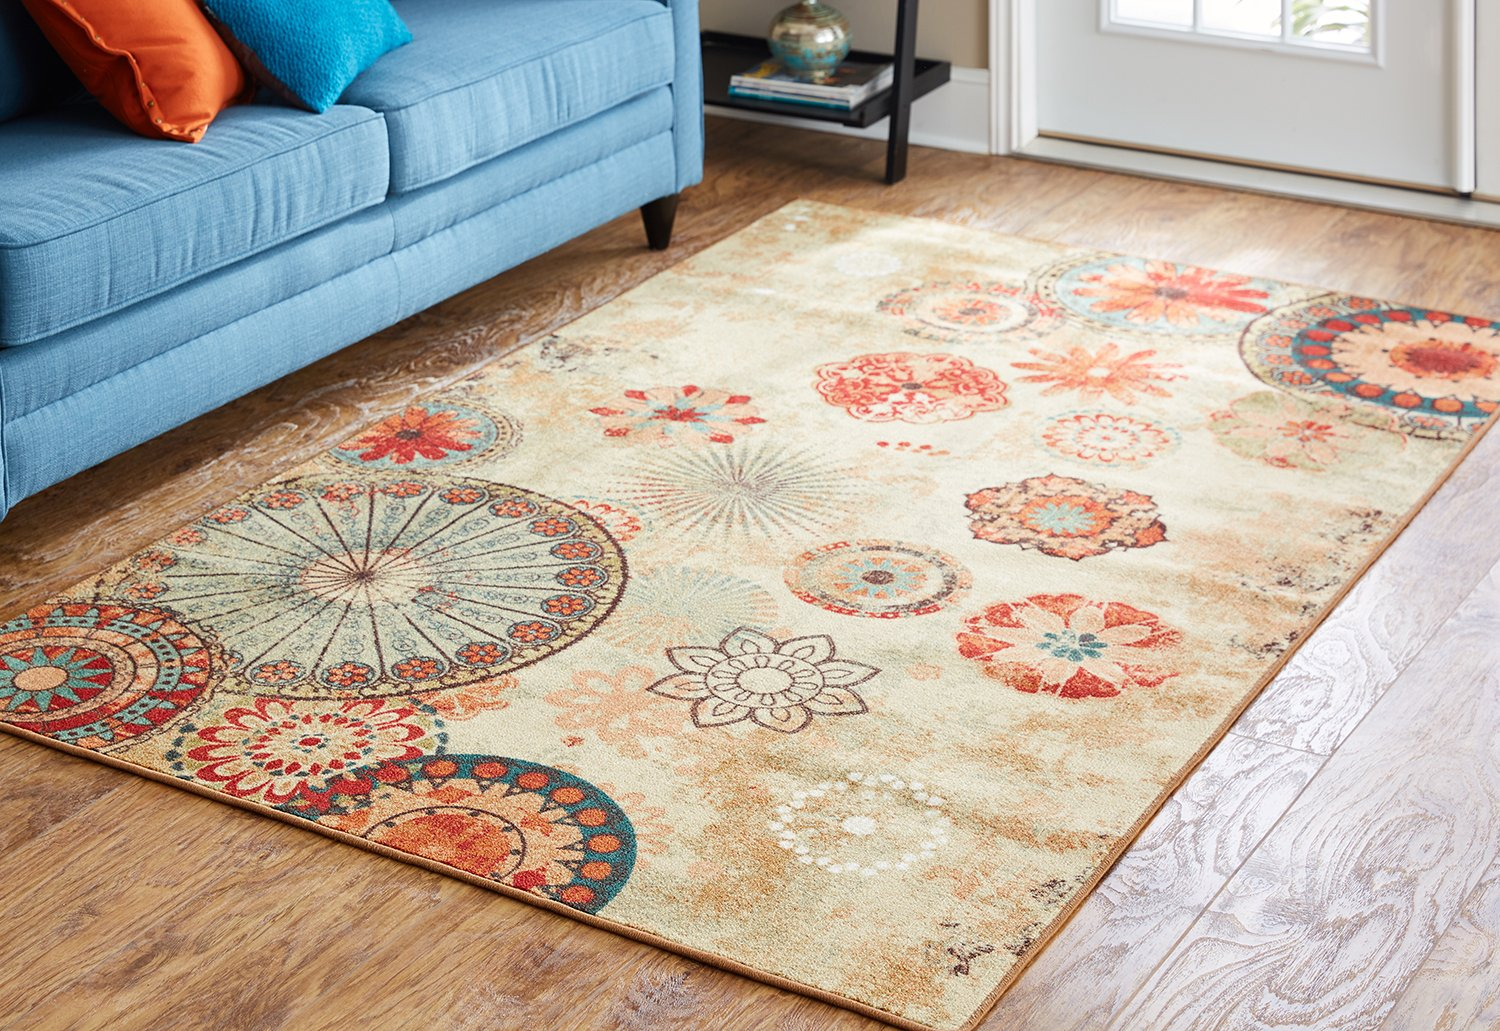 Mohawk Home Alexa Medallion Indoor/Outdoor Printed Area Rug, 5'x8', Multicolor by Mohawk Home